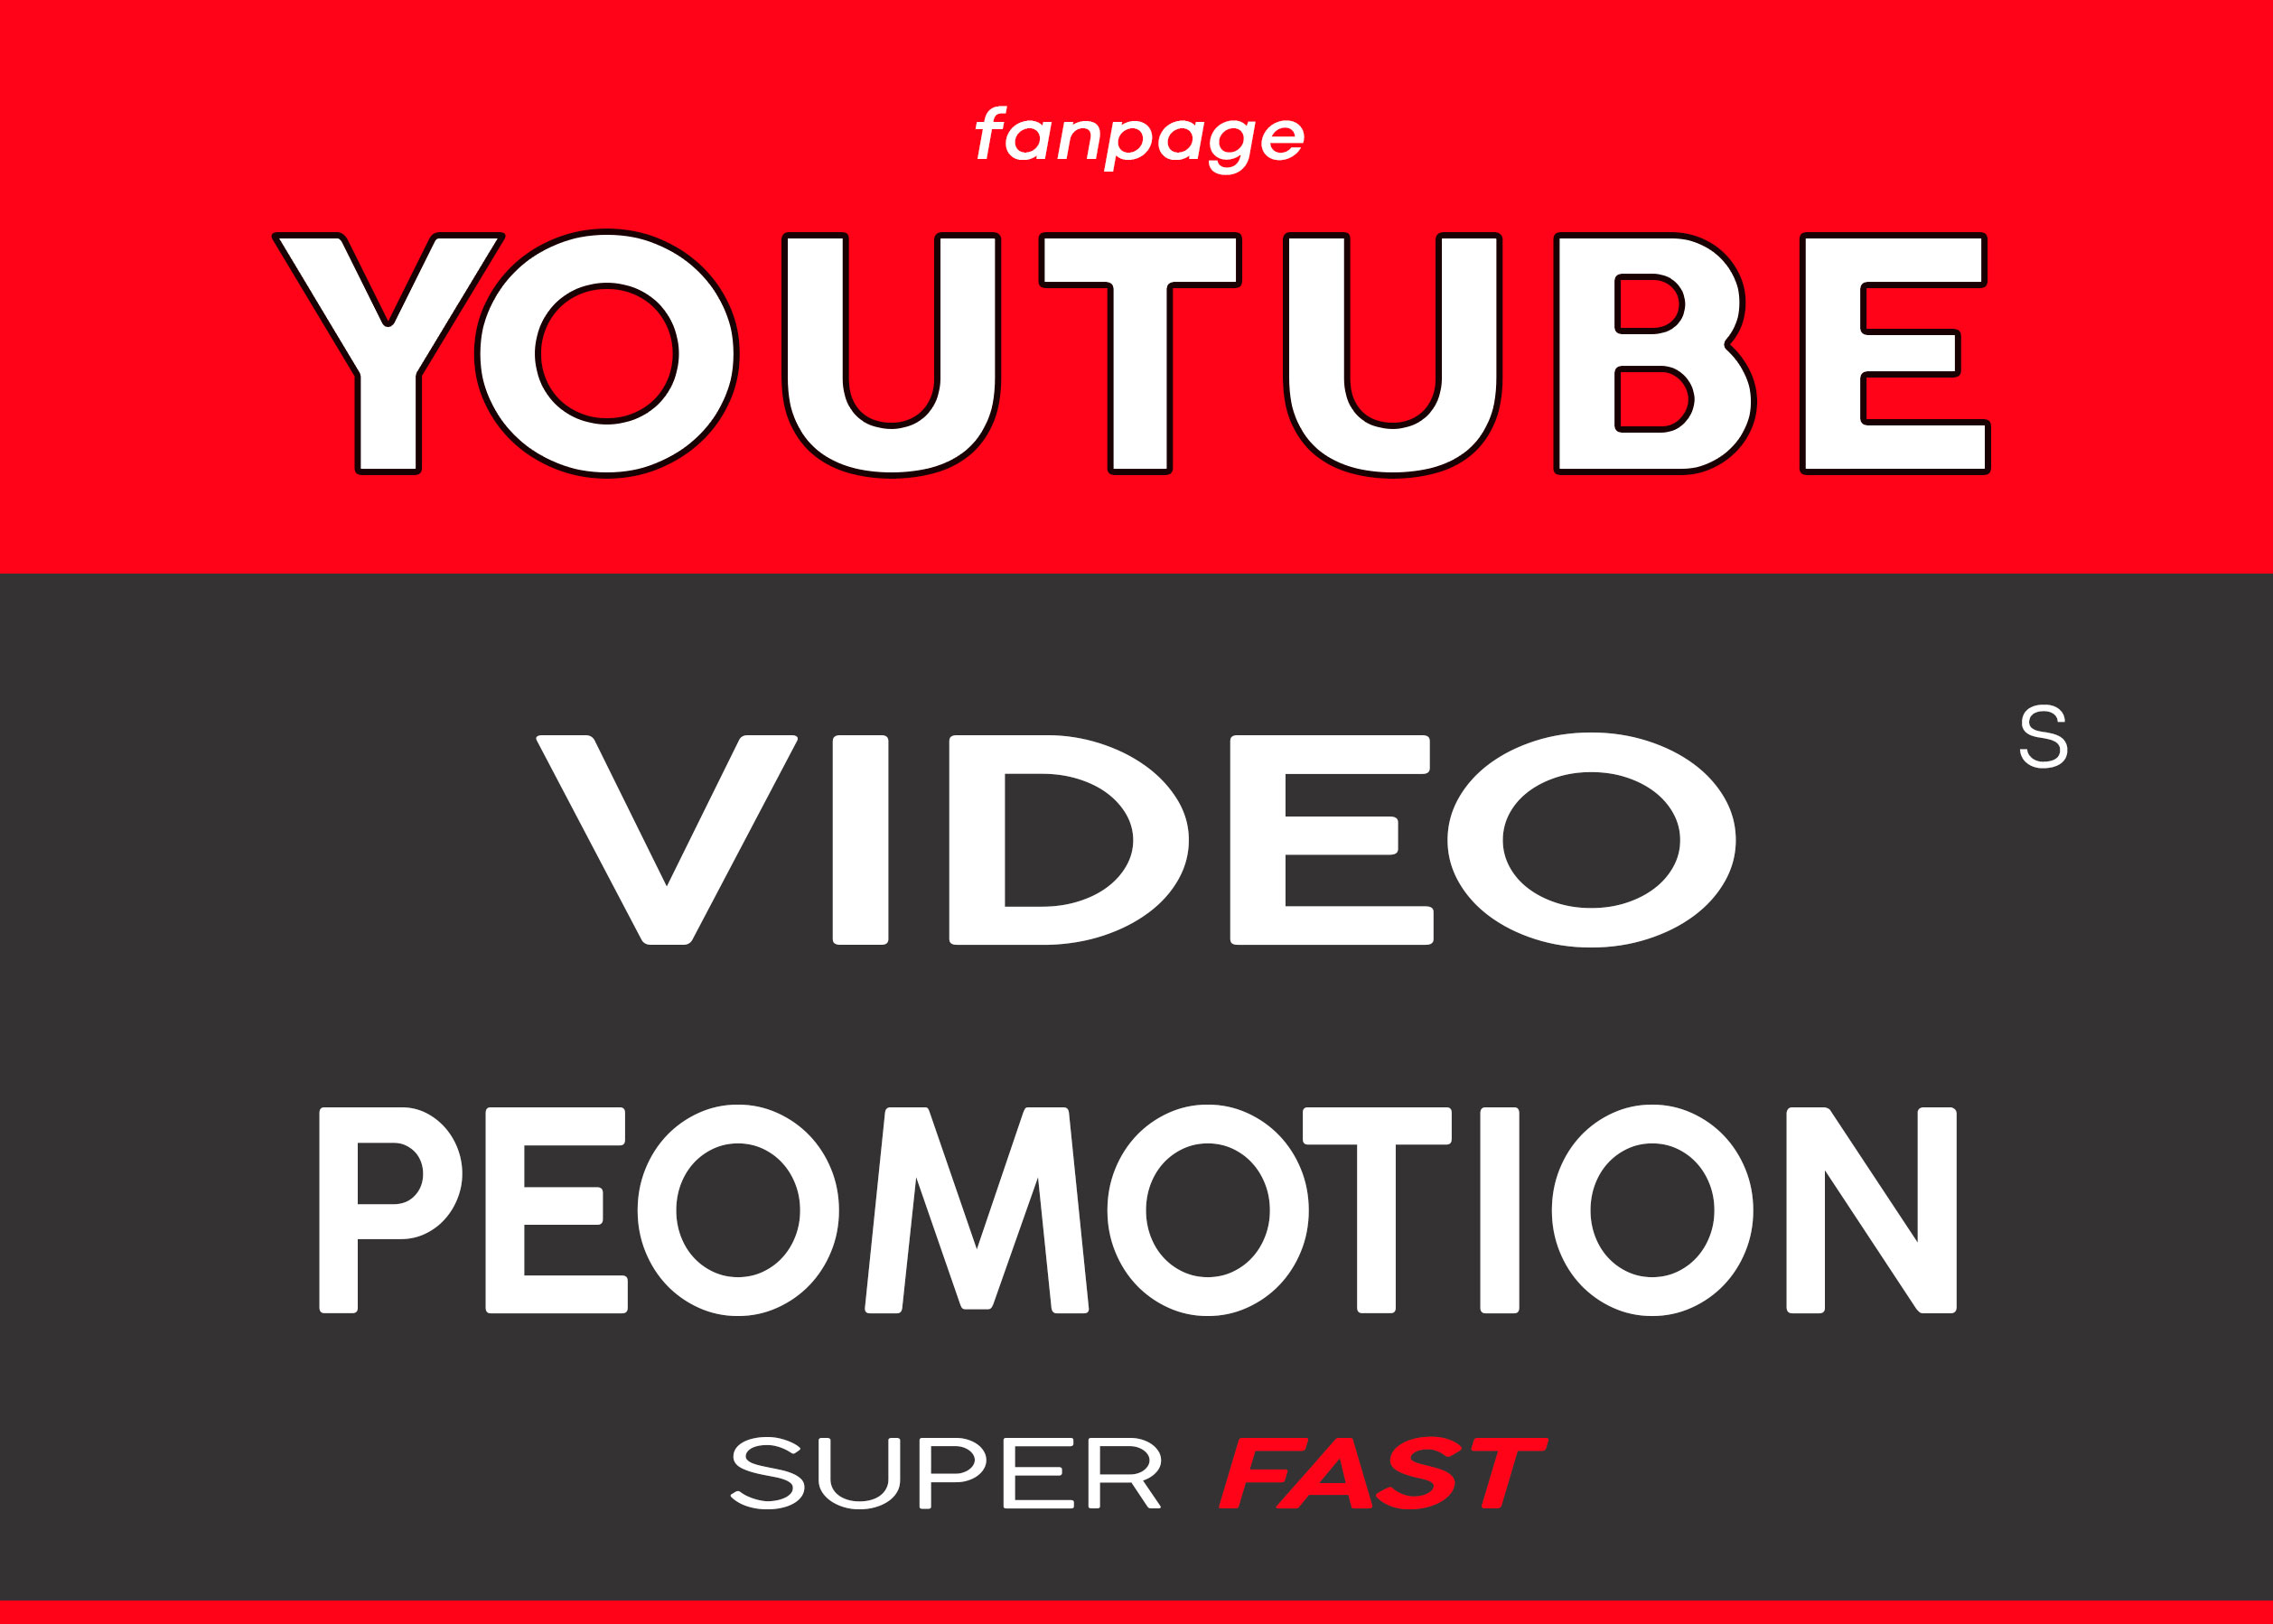 REAL YOUTUBE VIDEO PROMOTION AND MARKETING ORGANIC AND NATURAL PATTERN